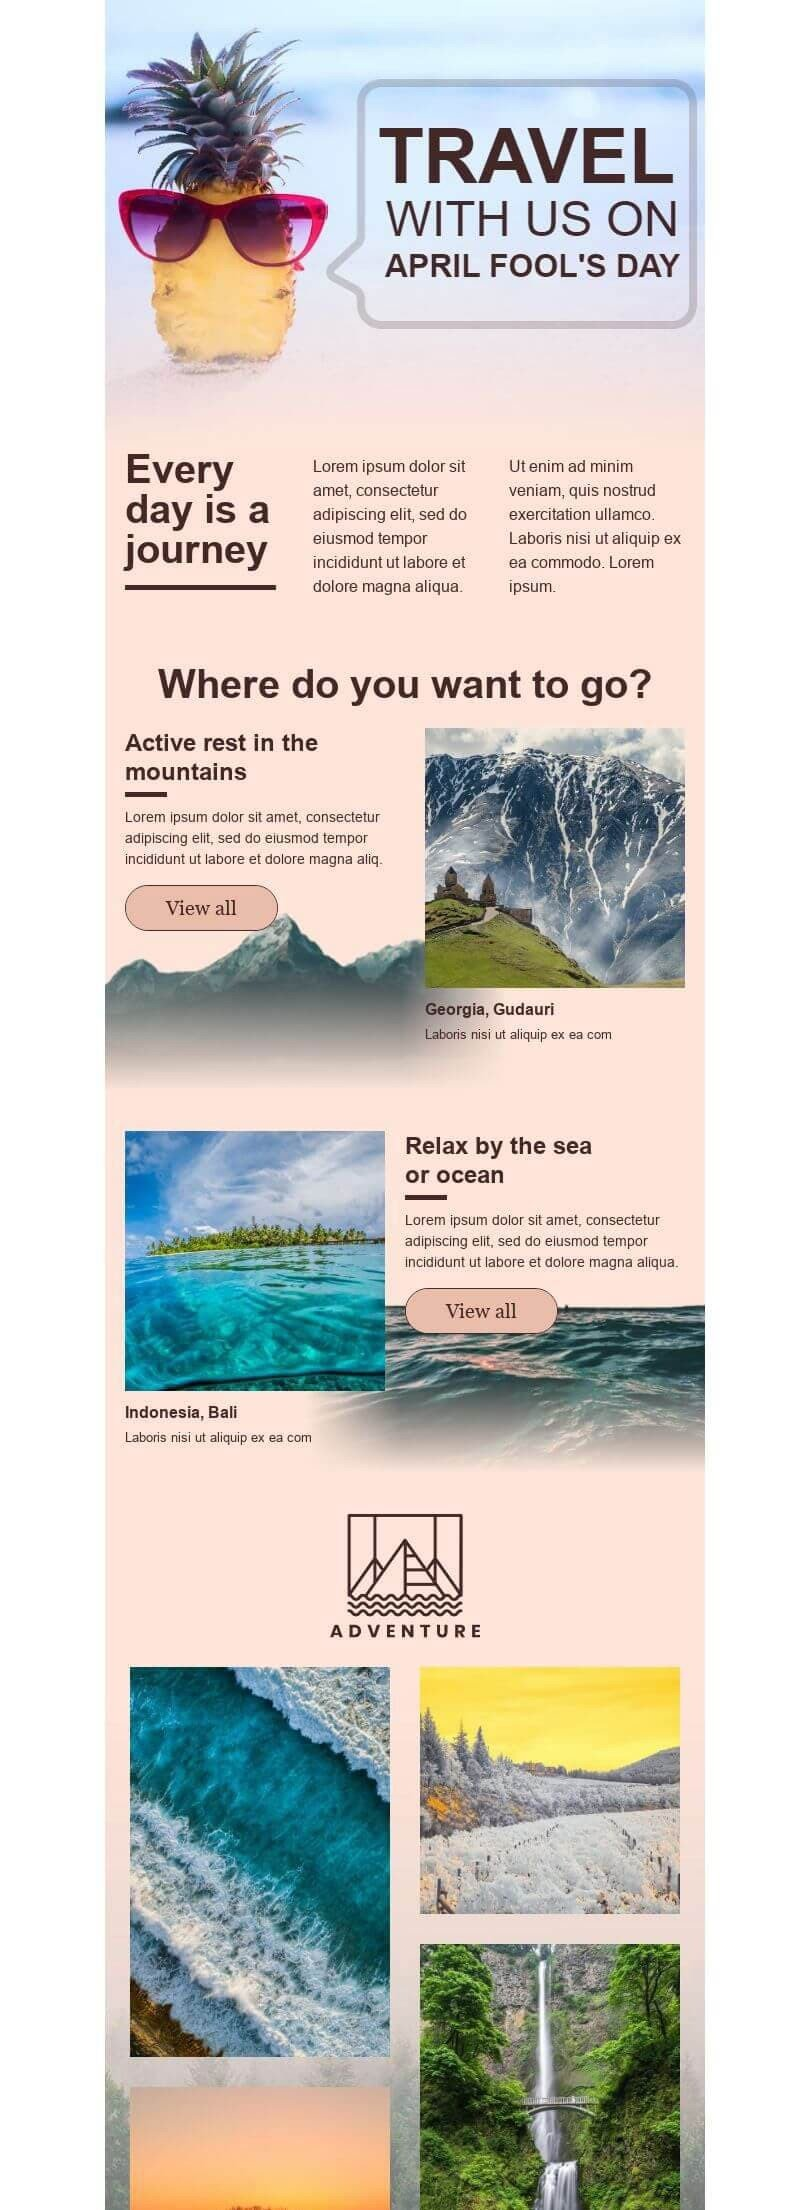 April Fools' Day Email Template «Every day is a journey» for Travel industry desktop view